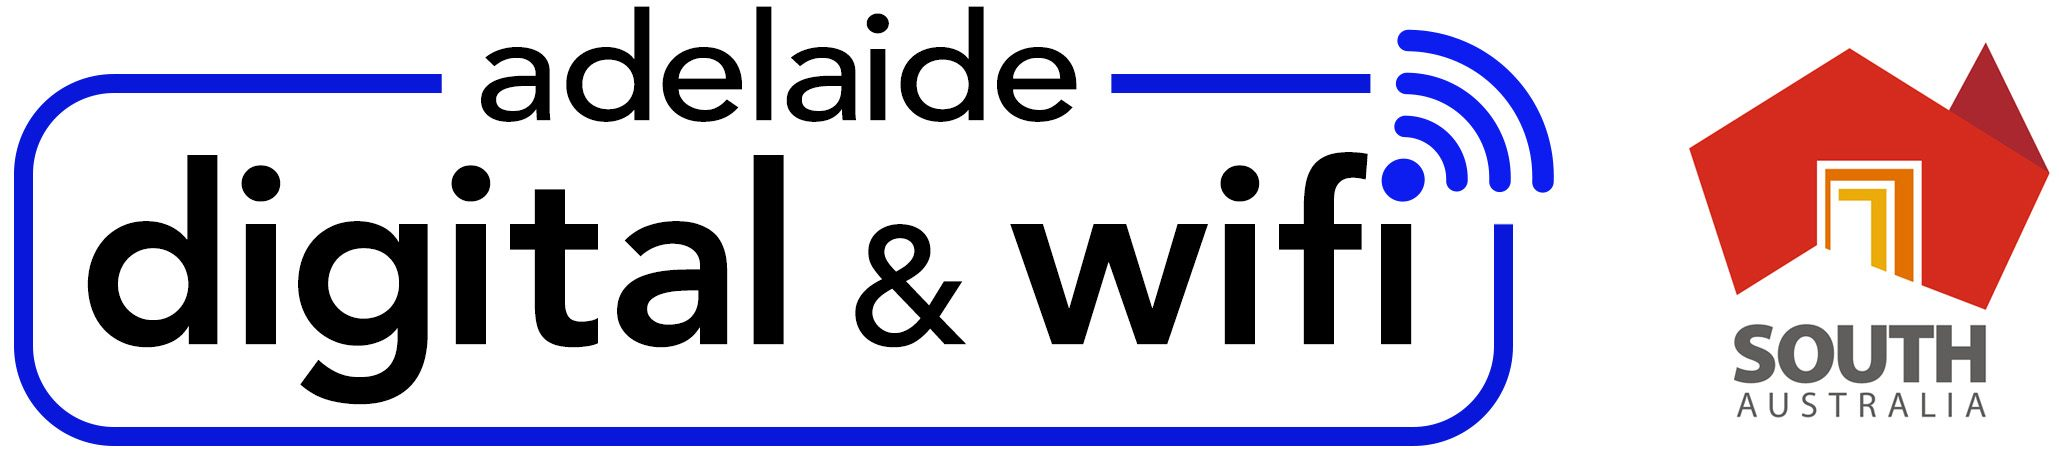 Adelaide Digital and WiFi